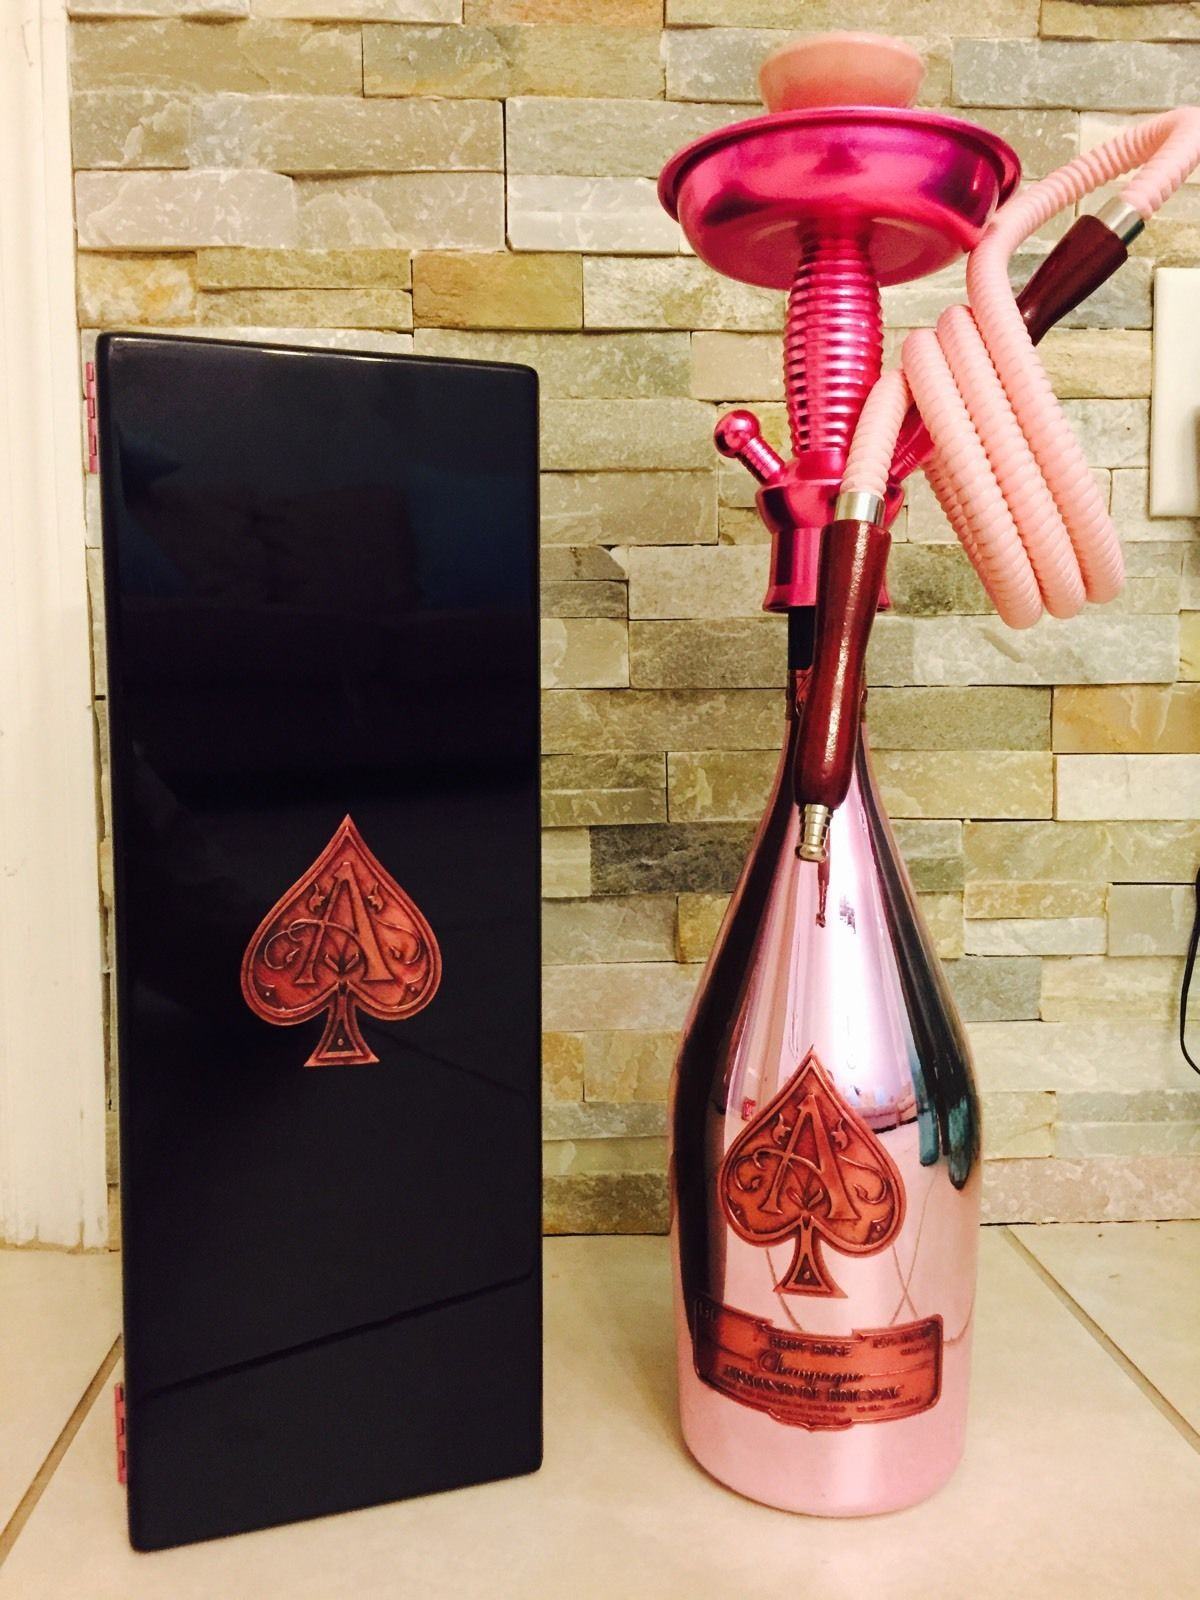 Buy a hand crafted original ace of spades champagne bottle with al custom made original ace of spades champagne bottle with al moonla edition hookah kit new reviewsmspy